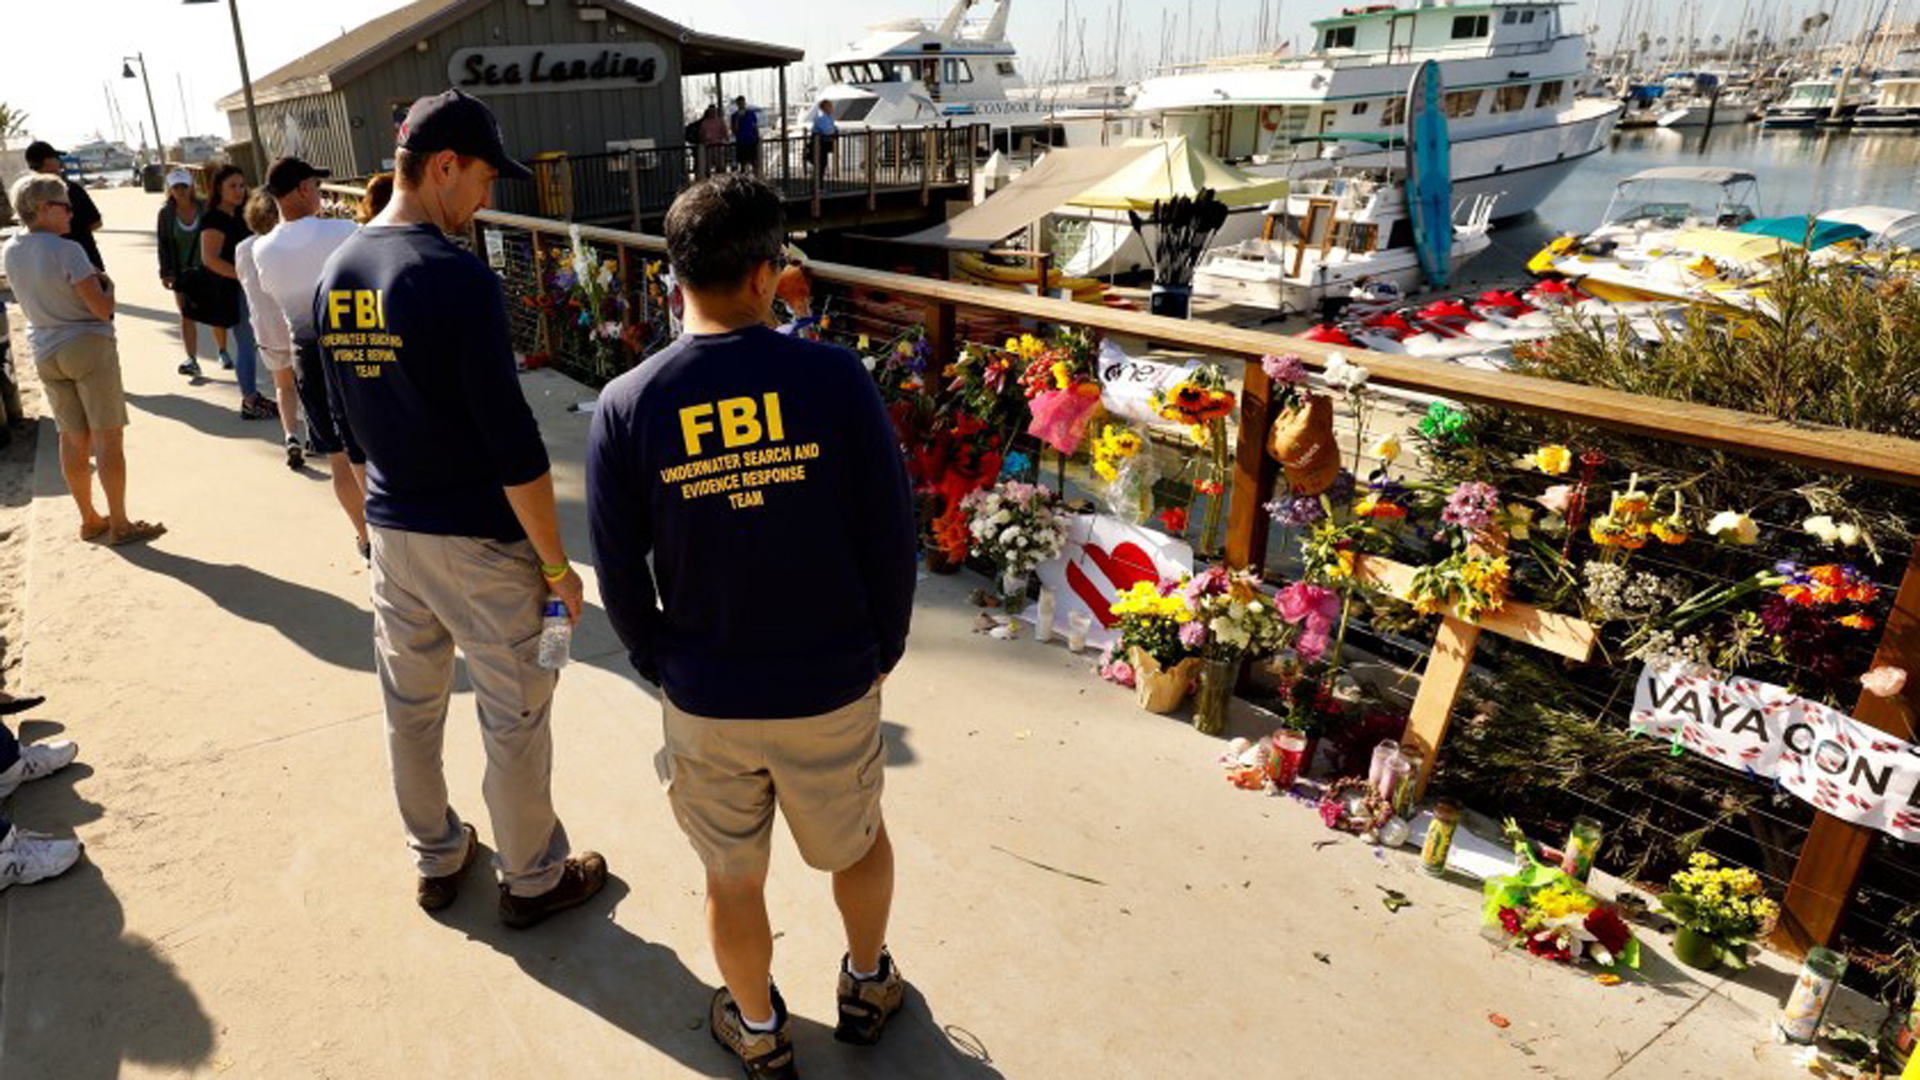 Members of an FBI dive team look at a growing memorial to the victims of the Labor Day fire aboard the Conception, a dive boat that was anchored off Santa Cruz Island. (Al Seib/Los Angeles Times)